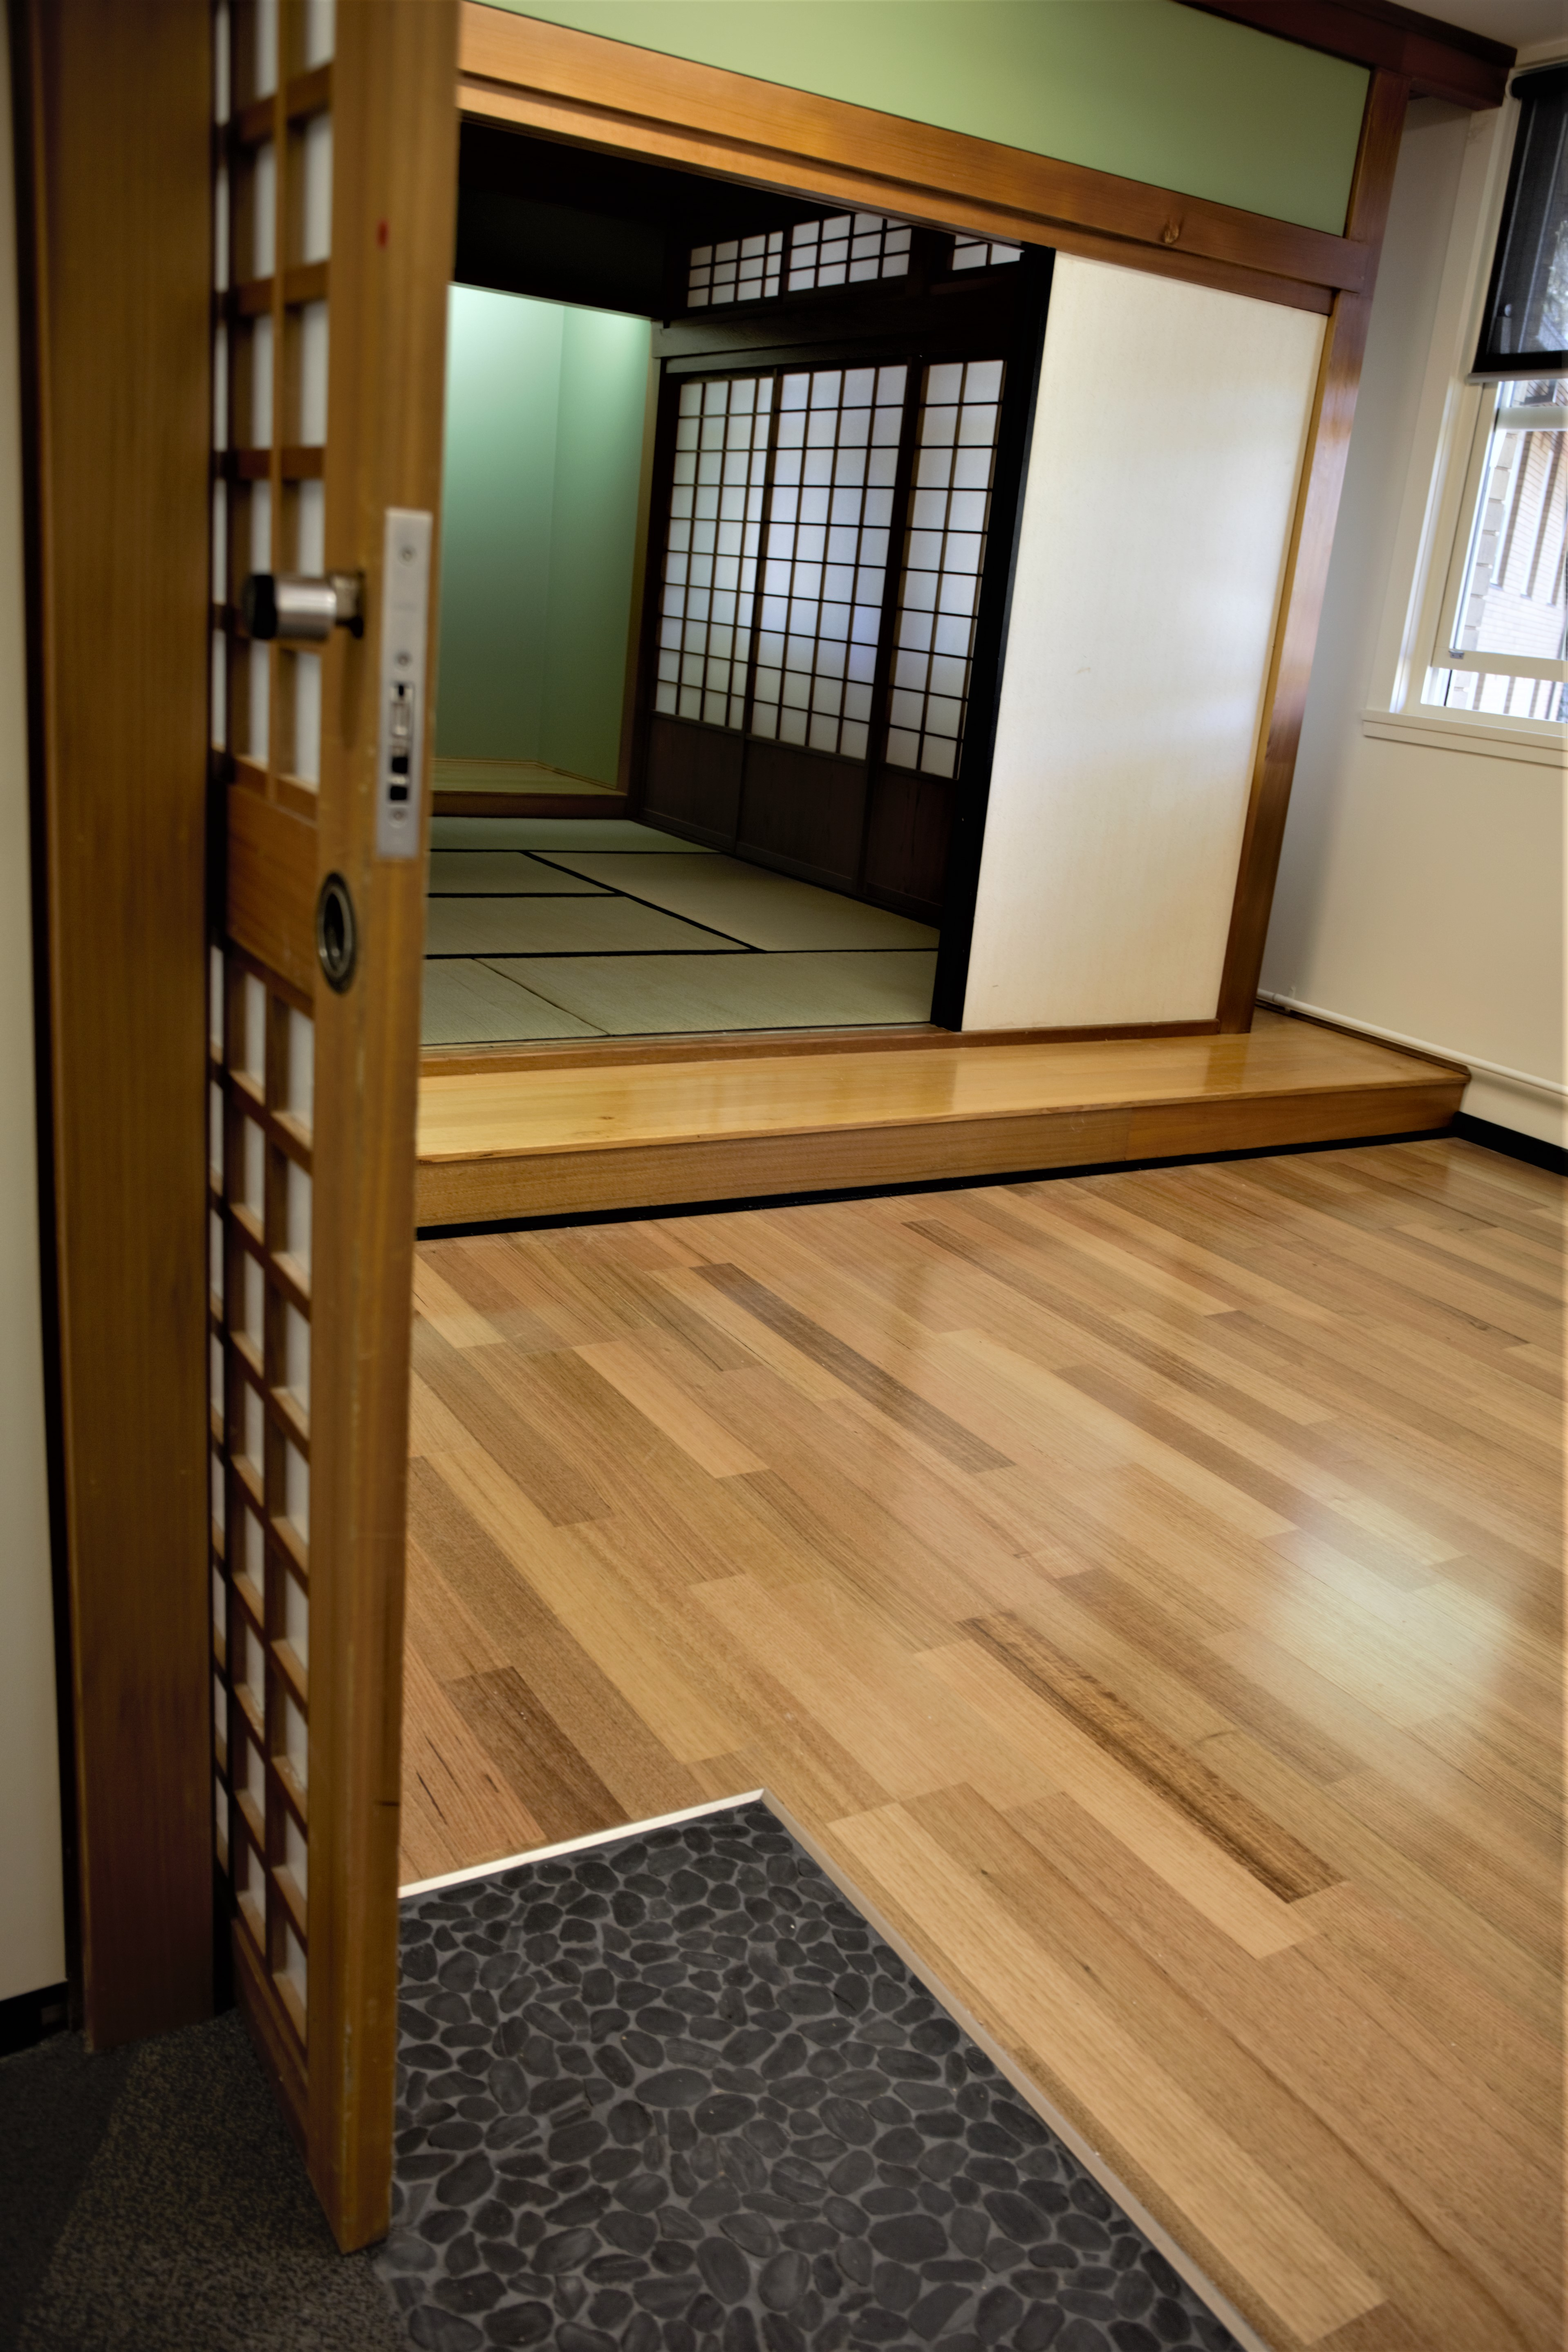 Japanese tatami room - Coombs building